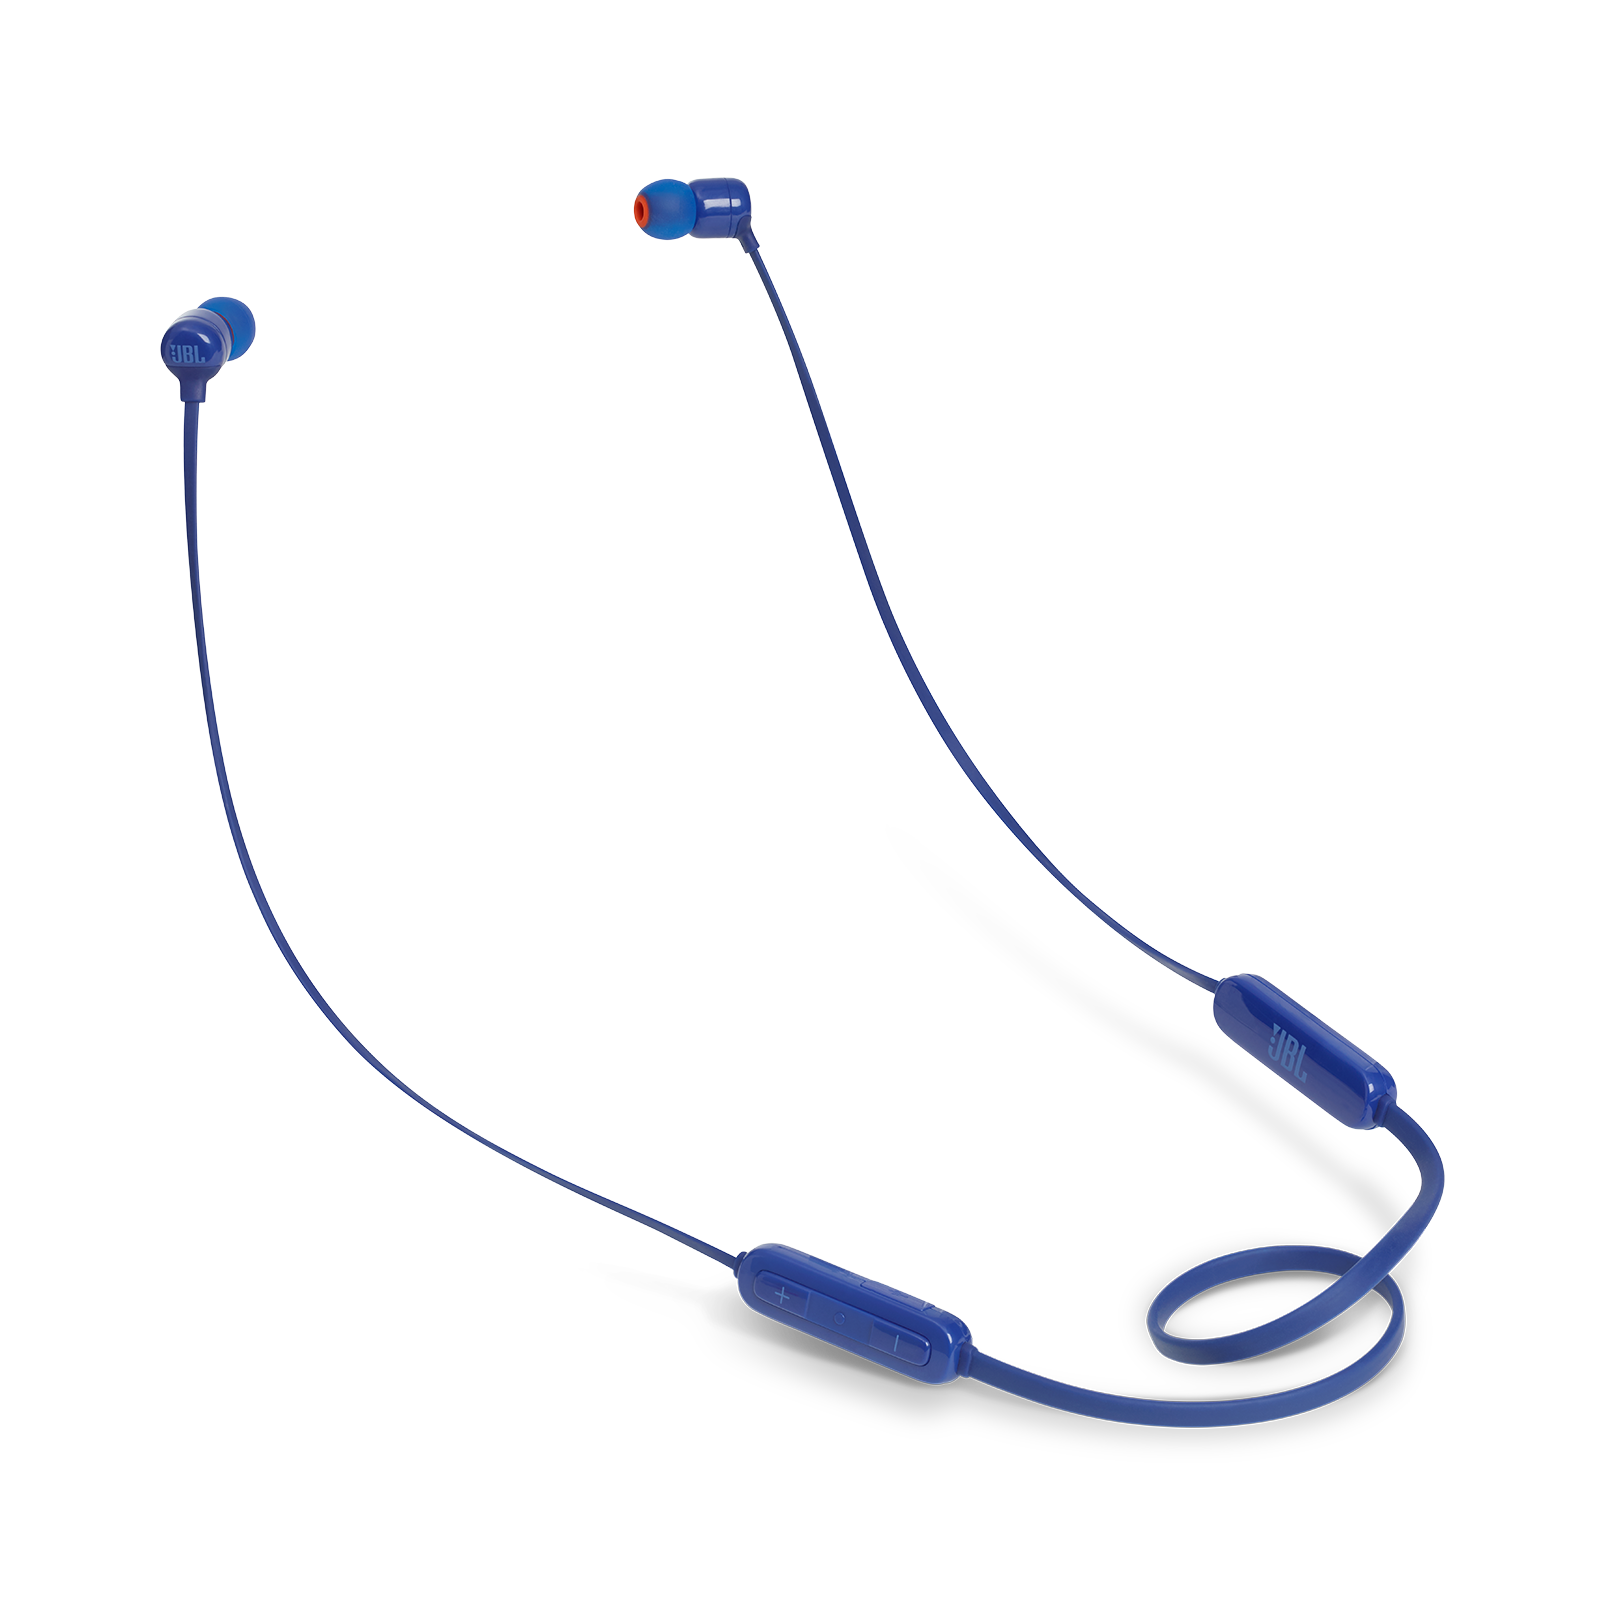 JBL TUNE 160BT - Blue - Wireless in-ear headphones - Hero